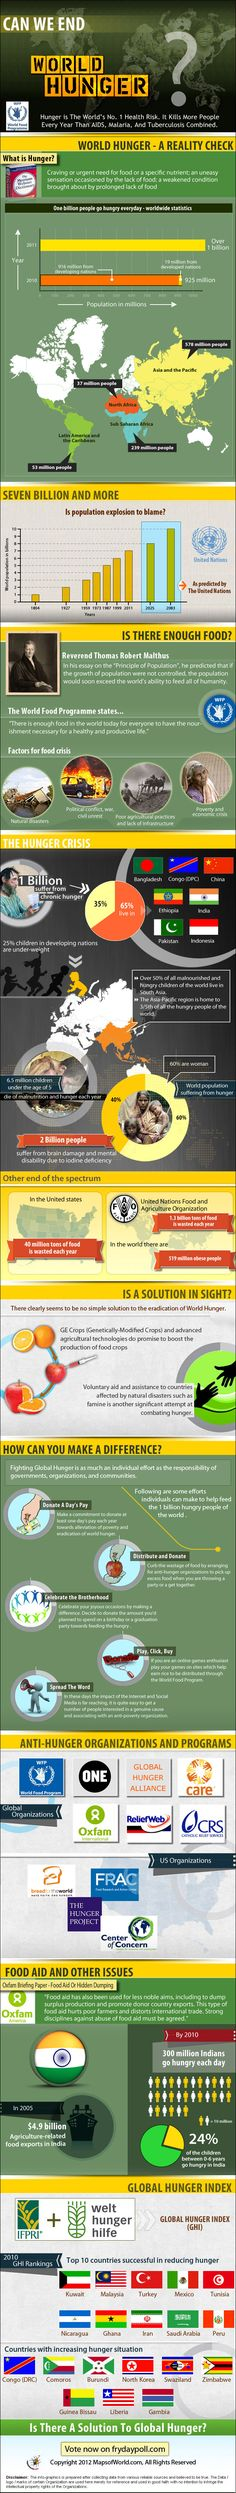 22nd Fryday Poll - Can We End World Hunger? - Facts & Infographic